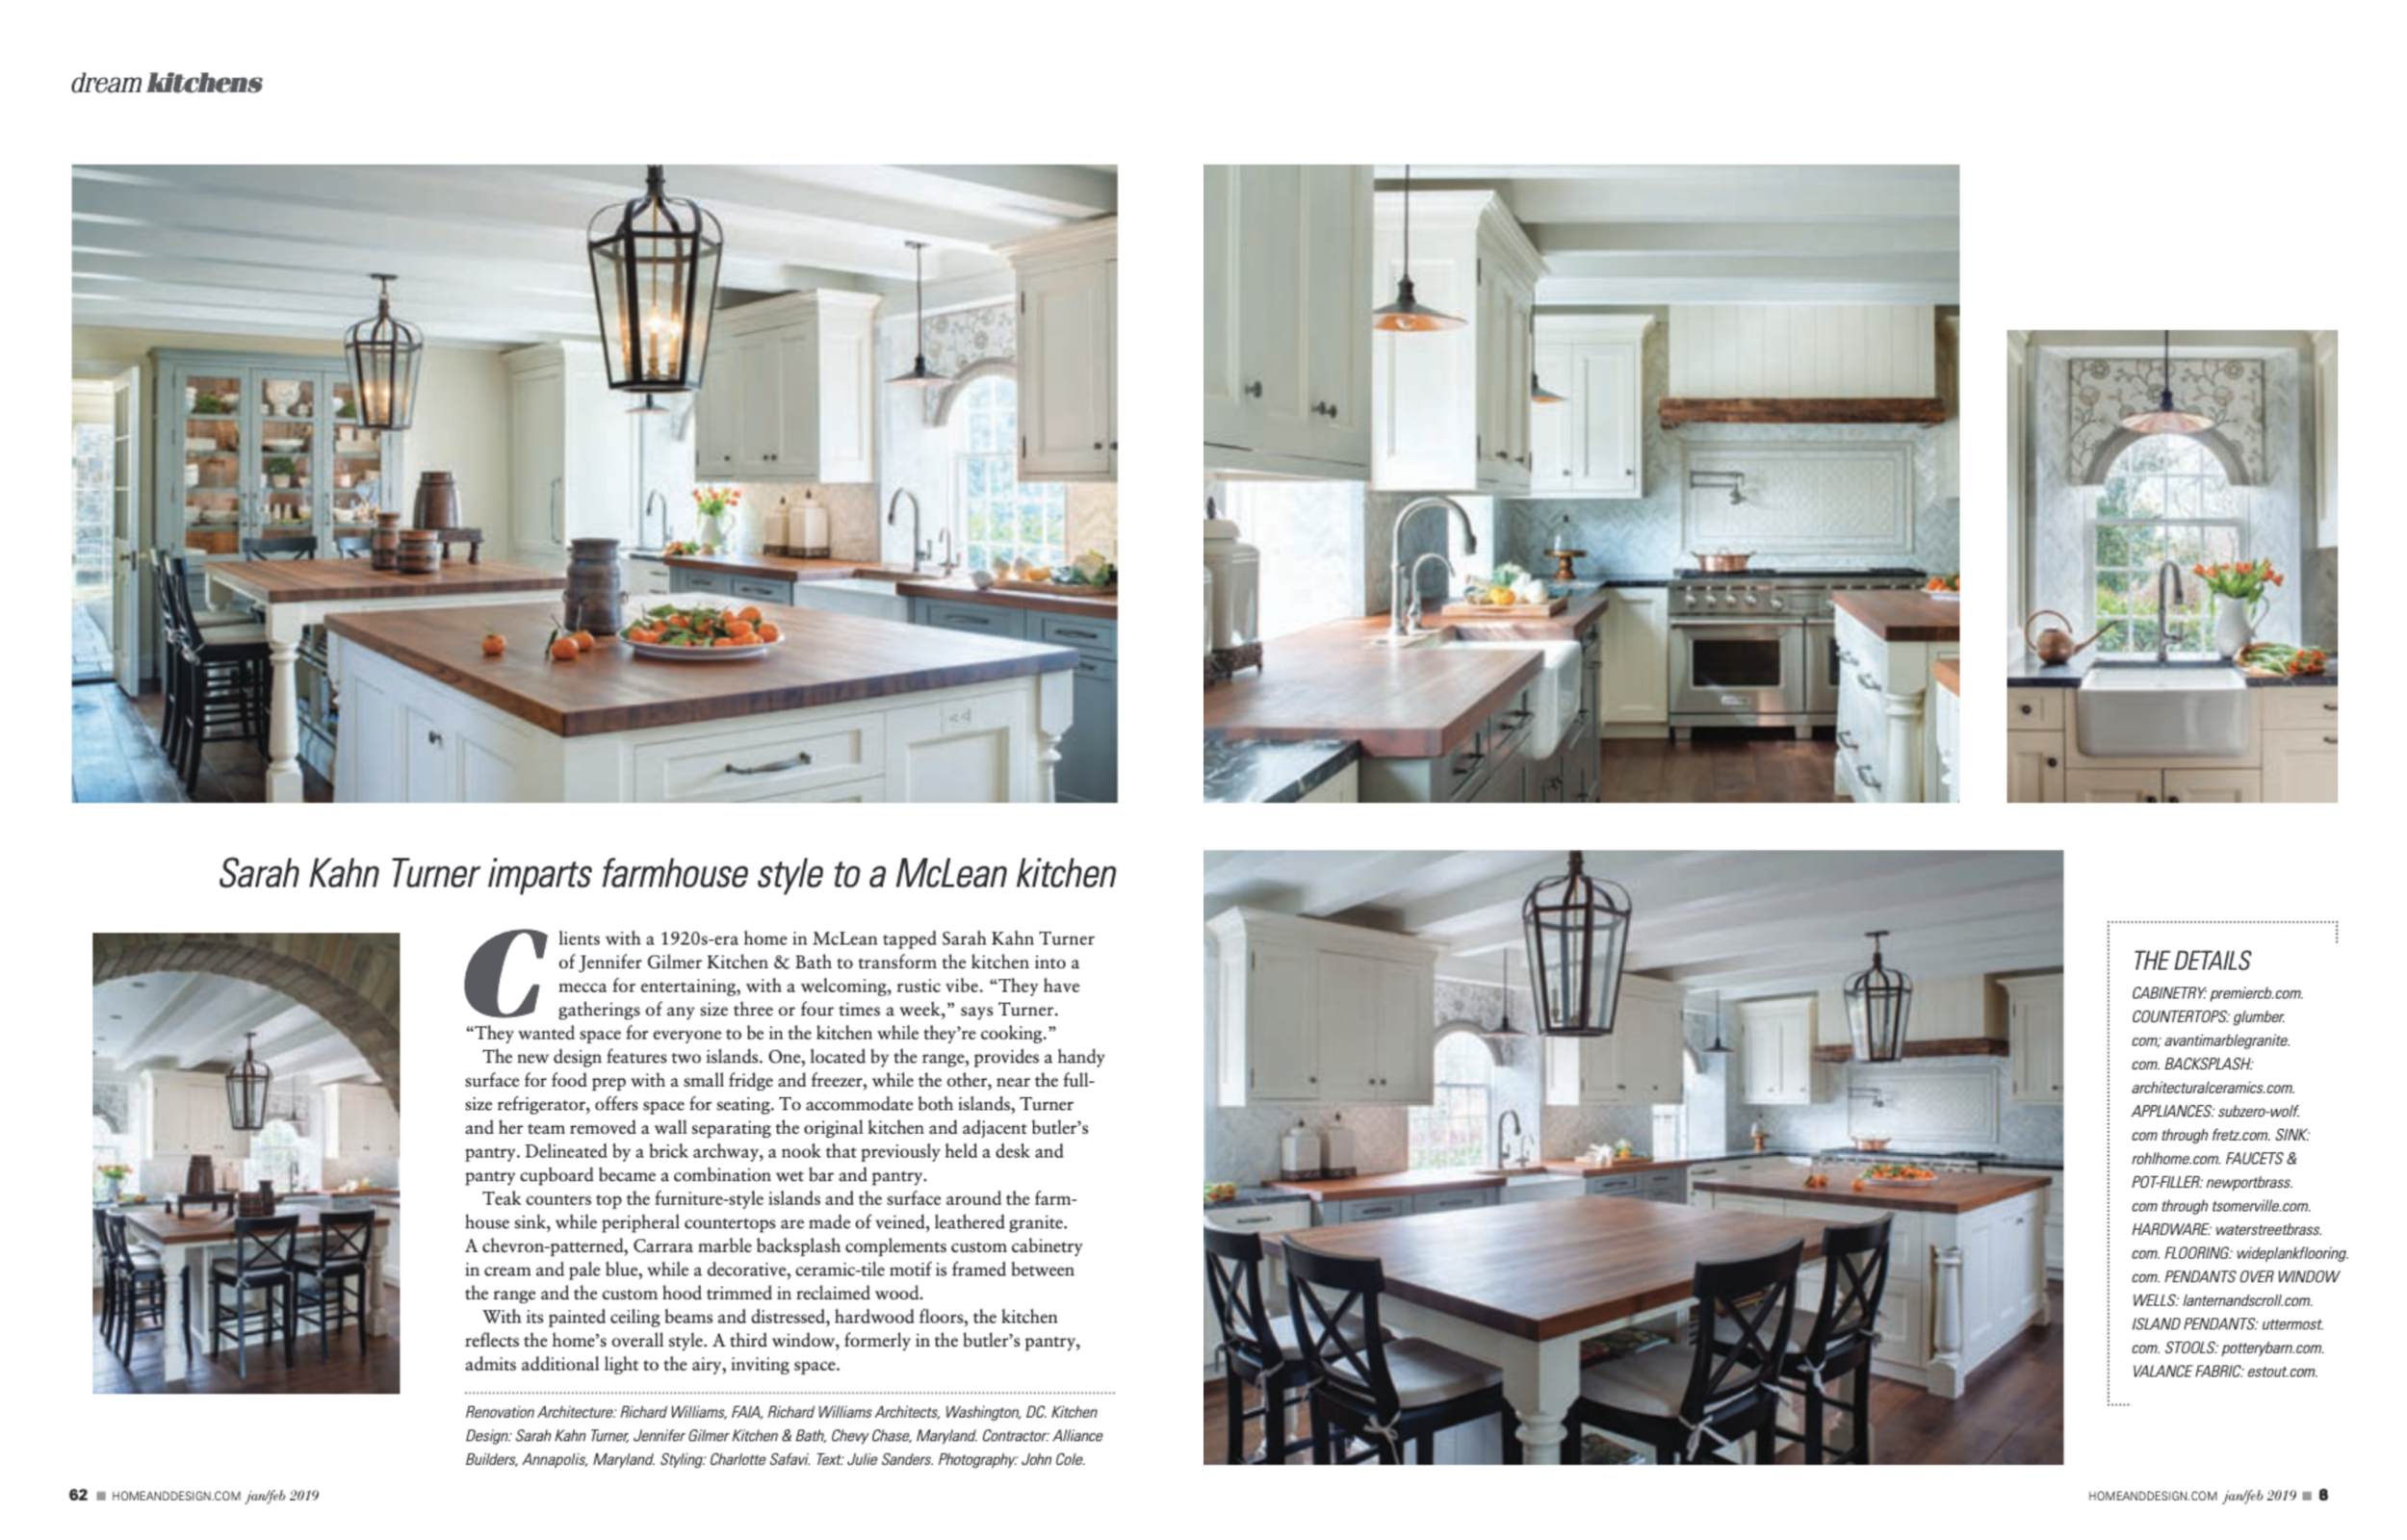 Home & Design Magazine  January/February 2019 Issue Jennifer Gilmer Kitchen & Bath